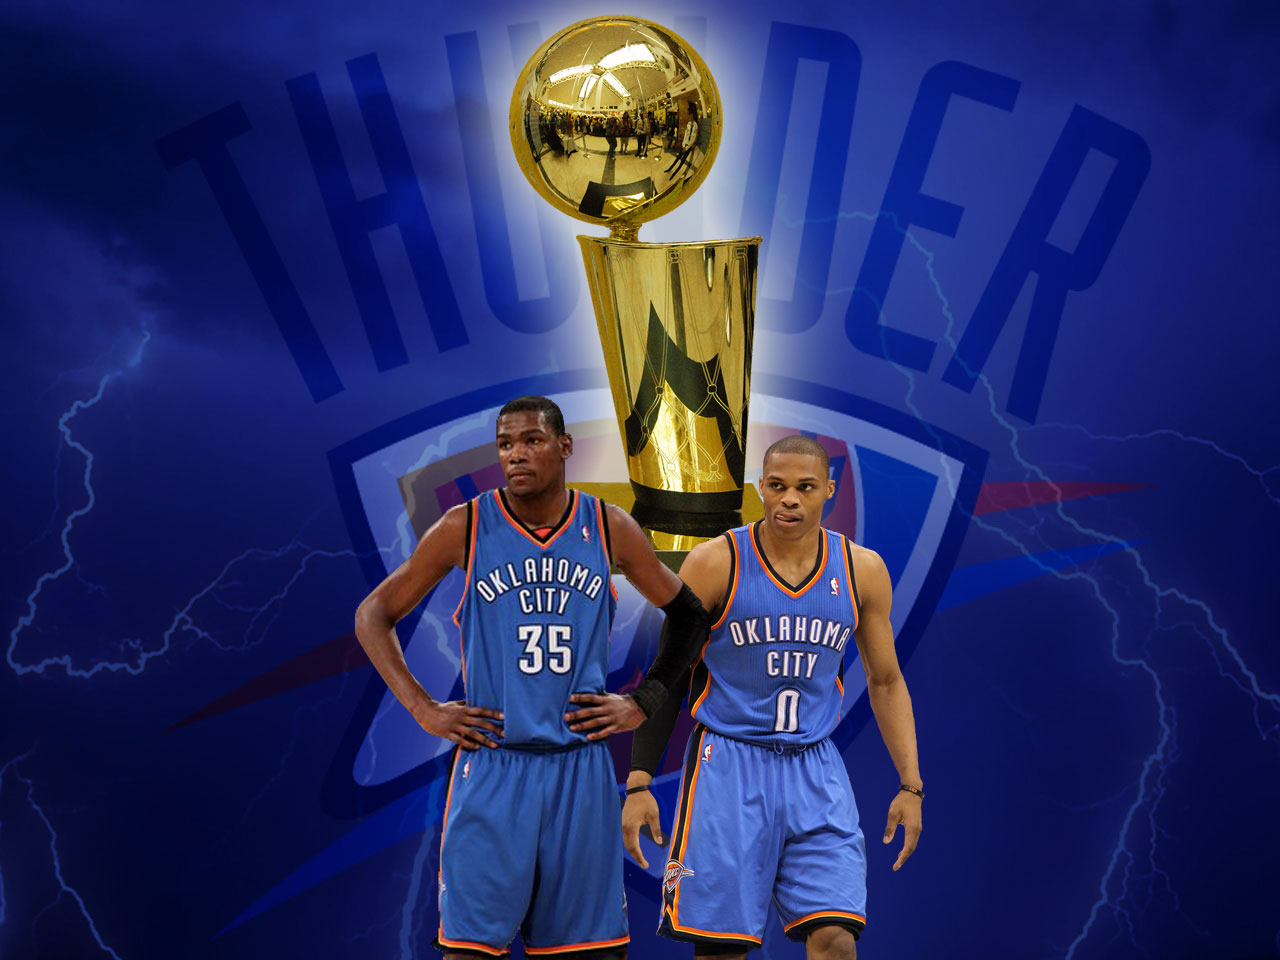 http://4.bp.blogspot.com/-RFYwDJz8qOQ/TeMym_p3J-I/AAAAAAAAE_k/ktBftaQ3CB8/s1600/Oklahoma-City-Thunder-NBA-Trophy-Wallpaper-BasketWallpapers.com-.jpg